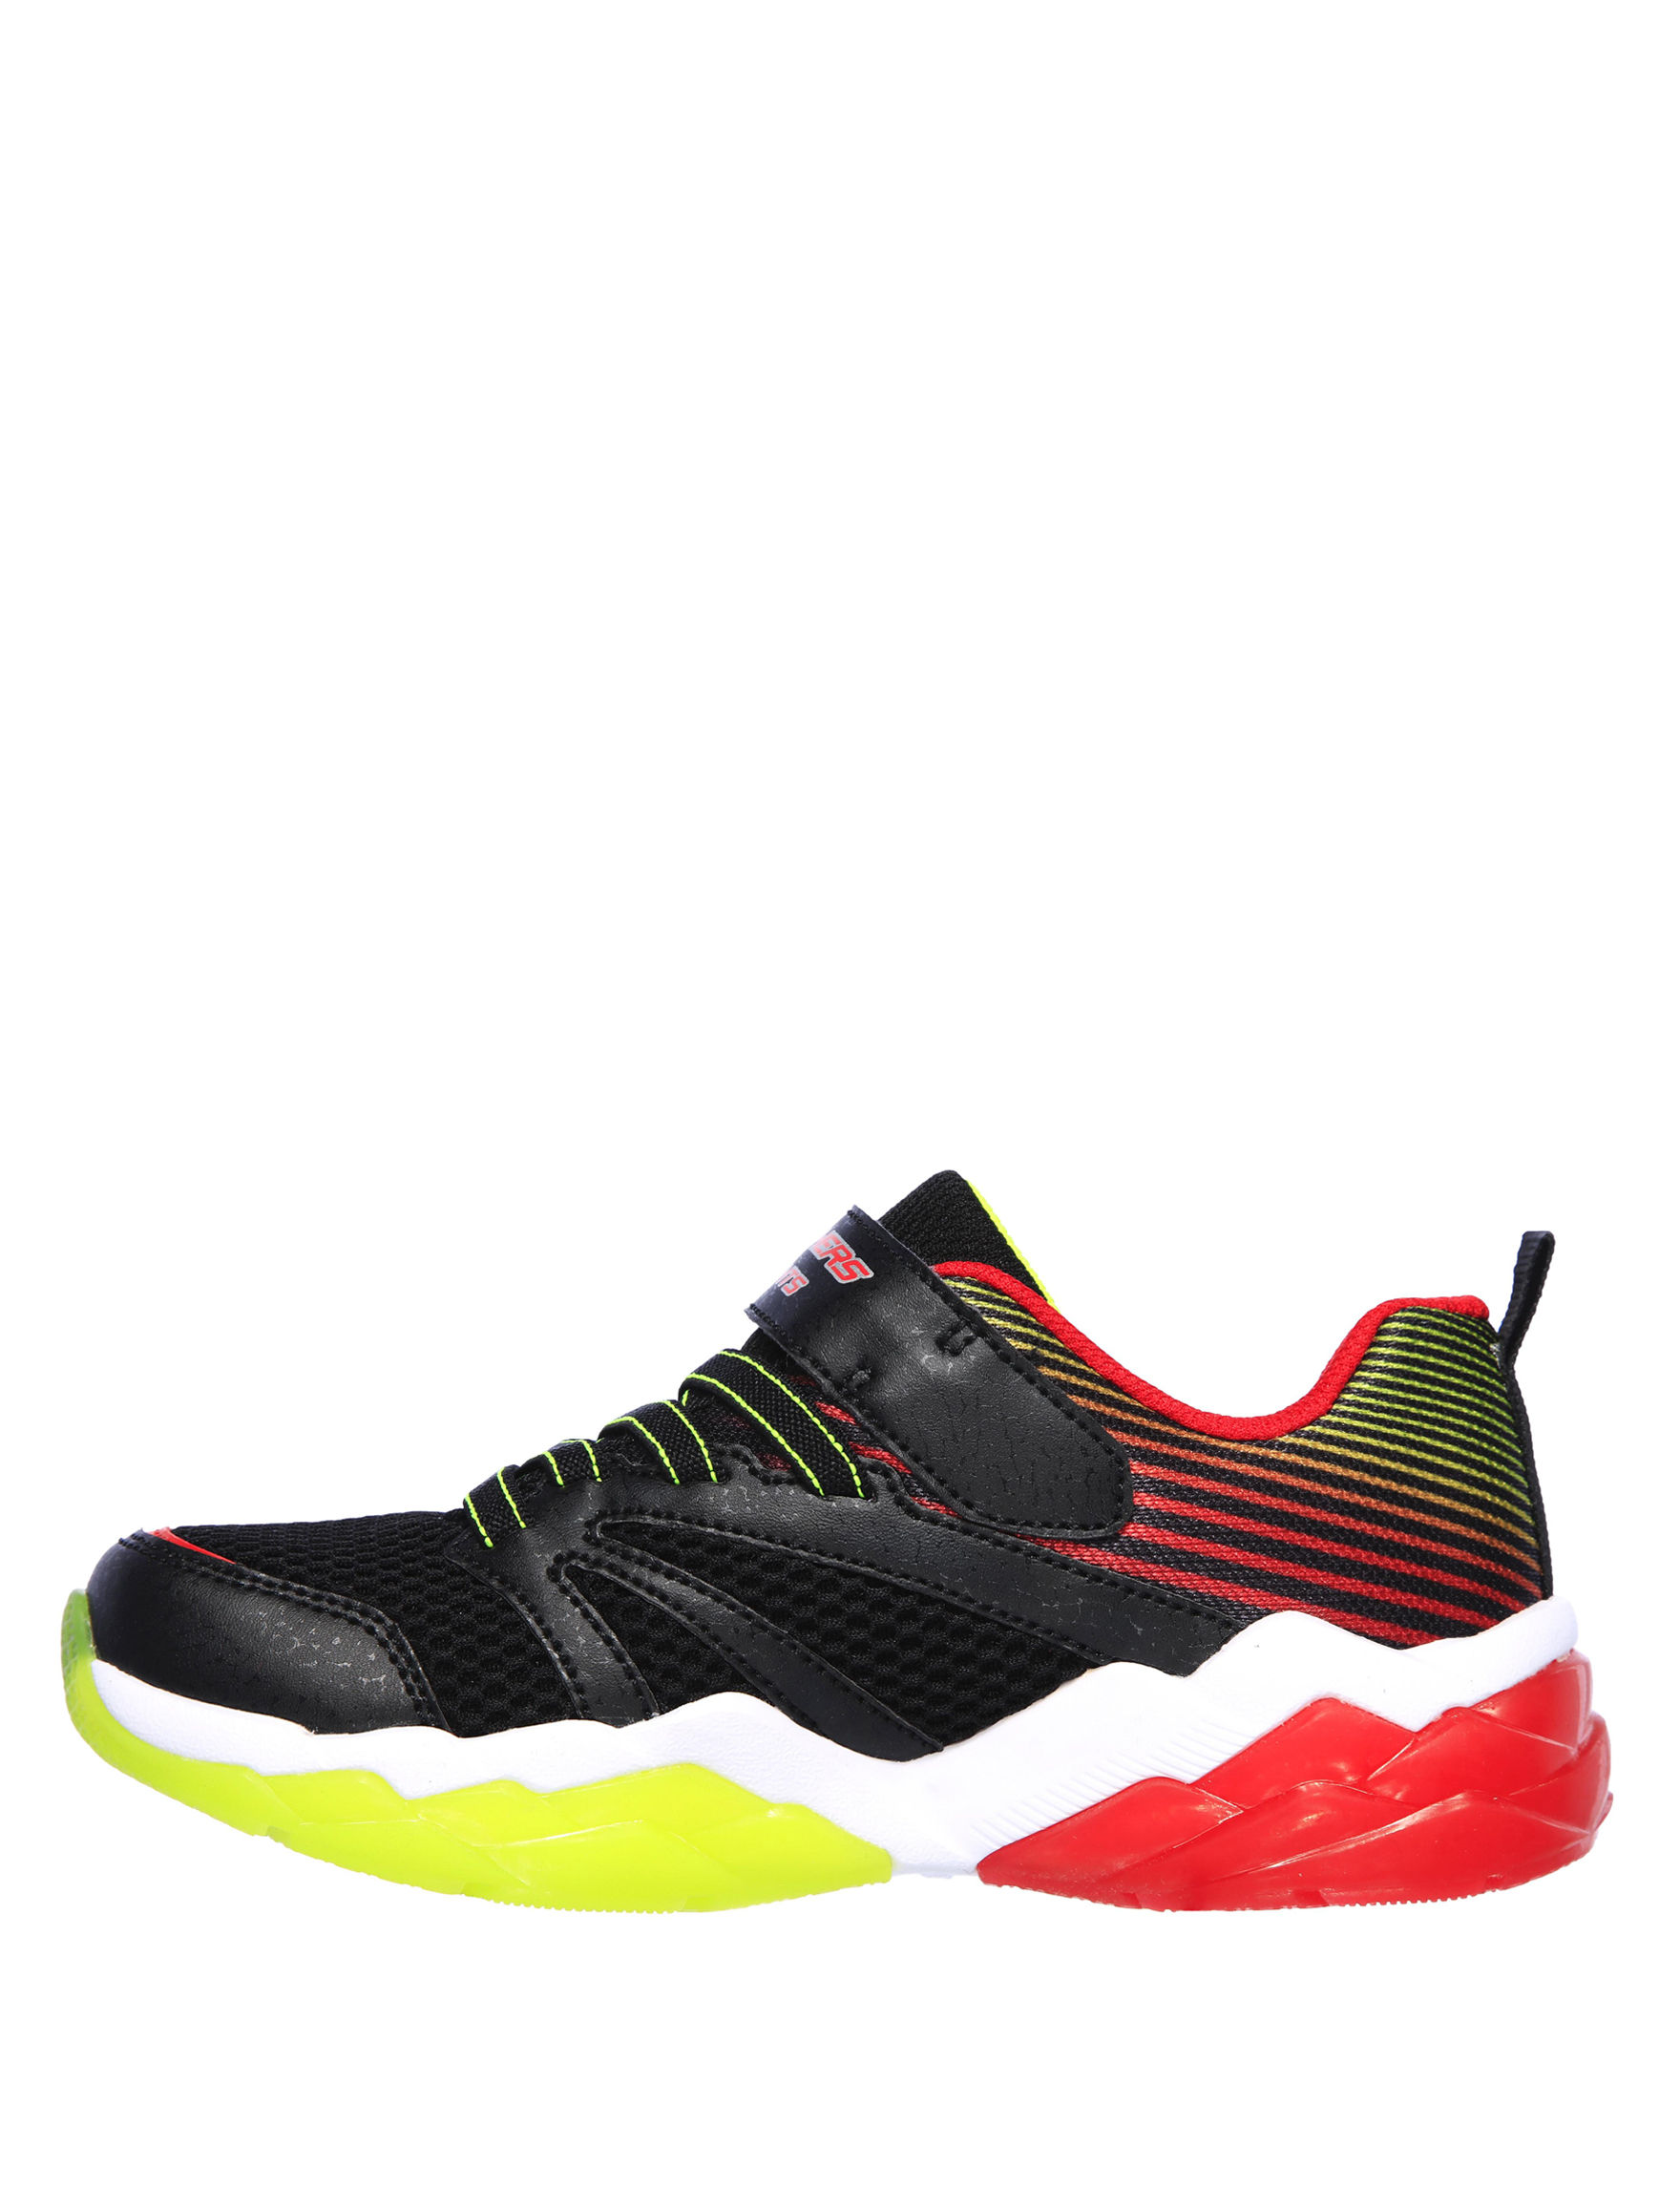 Skechers S Lights Rapid Flash 2.0 Light Up Fashion Sneakers